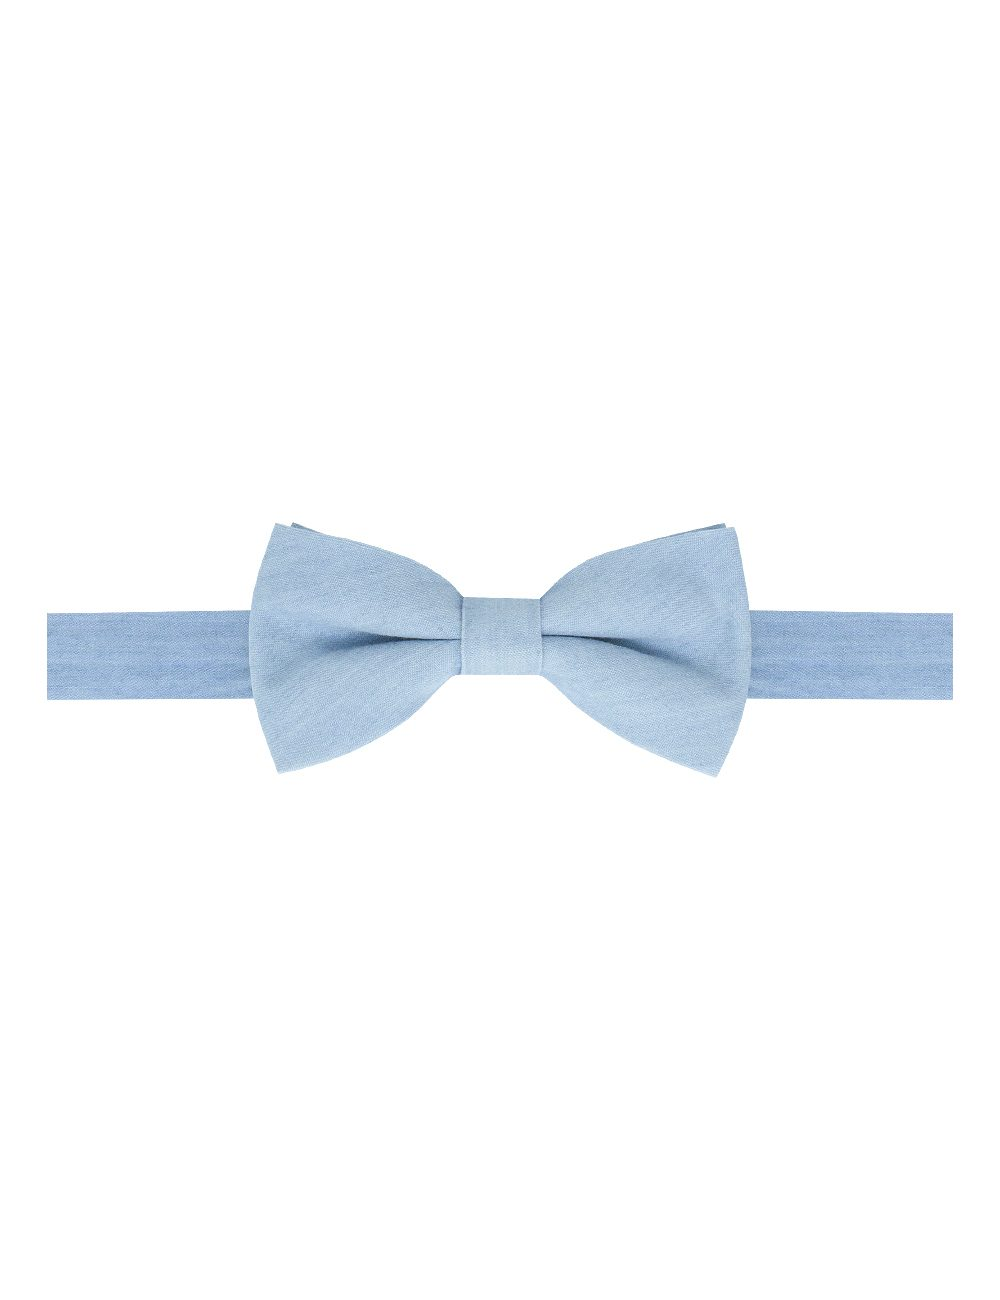 Washed Out Blue Denim Woven Bowtie - WBT41.3